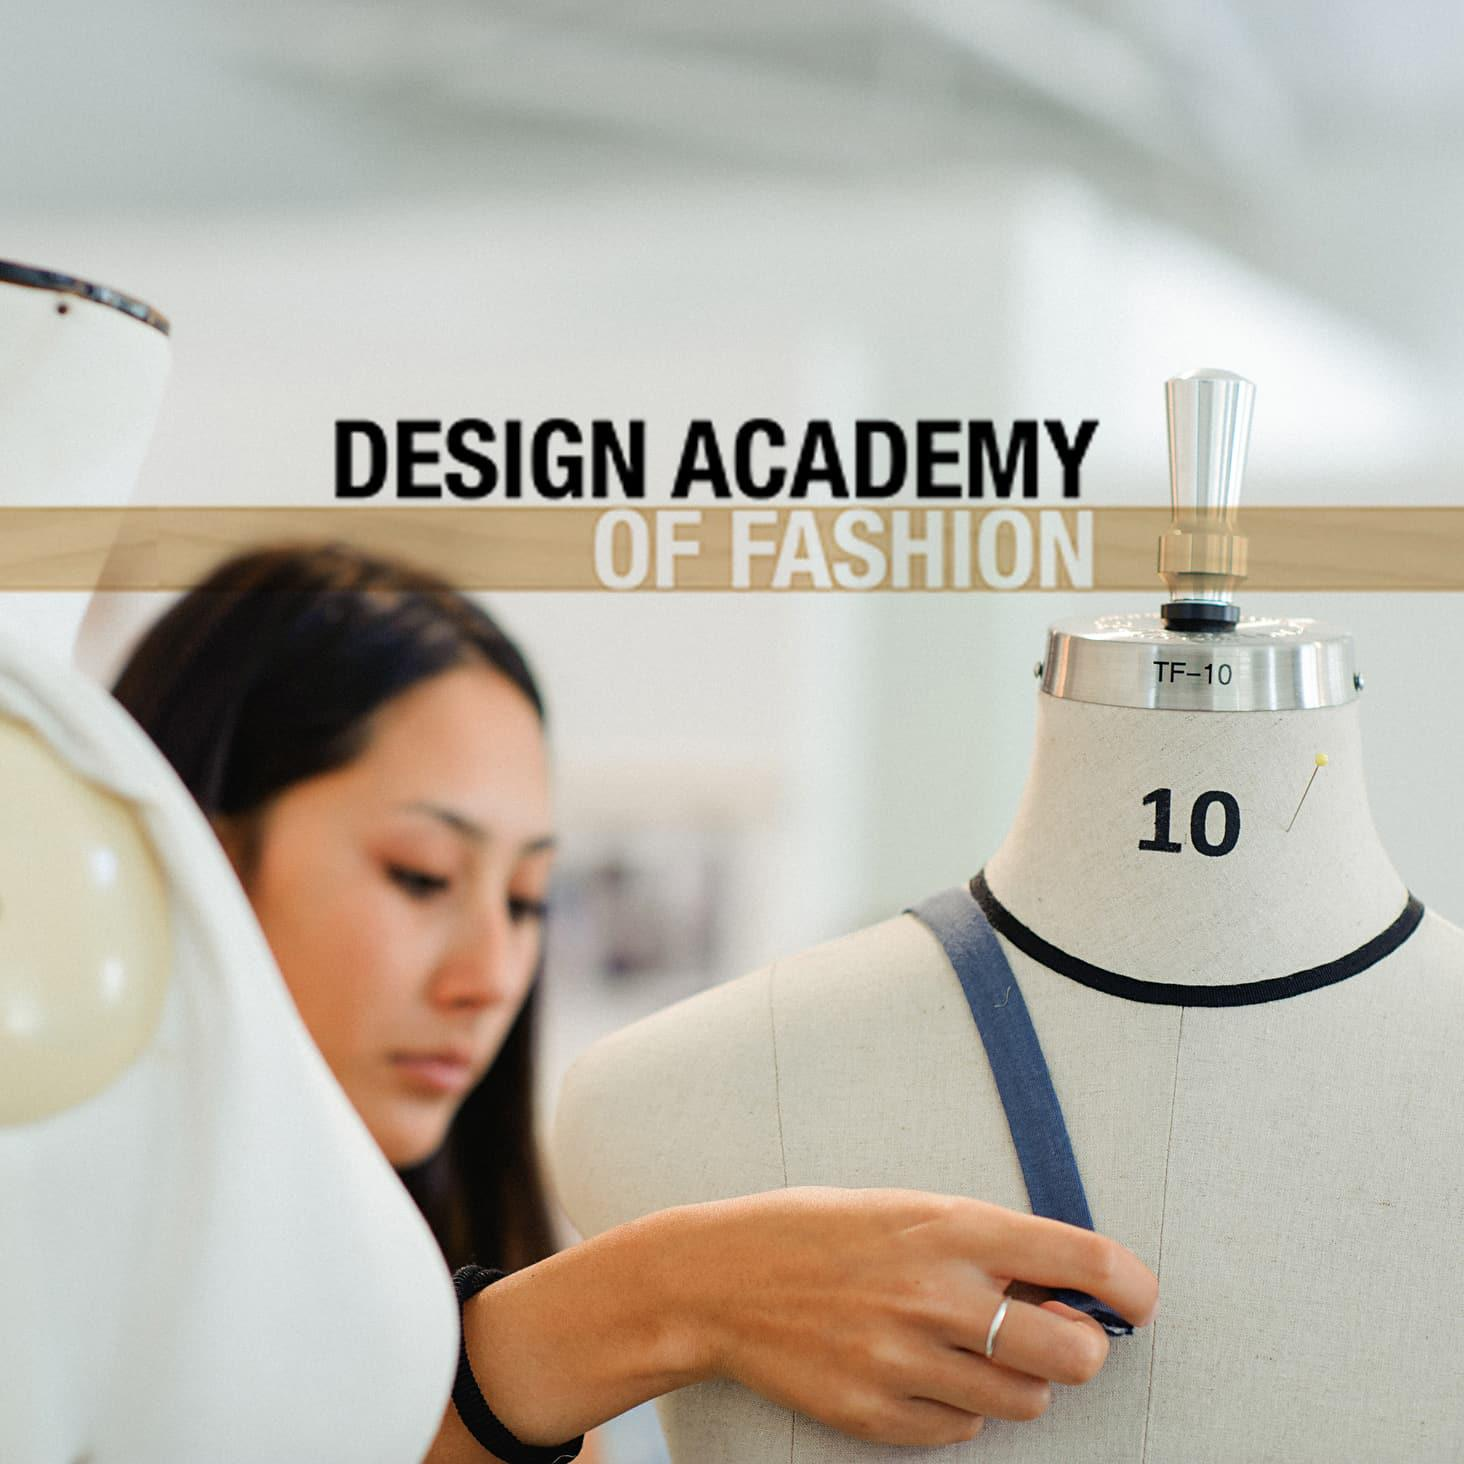 Fashion courses see drop in applications rare photo